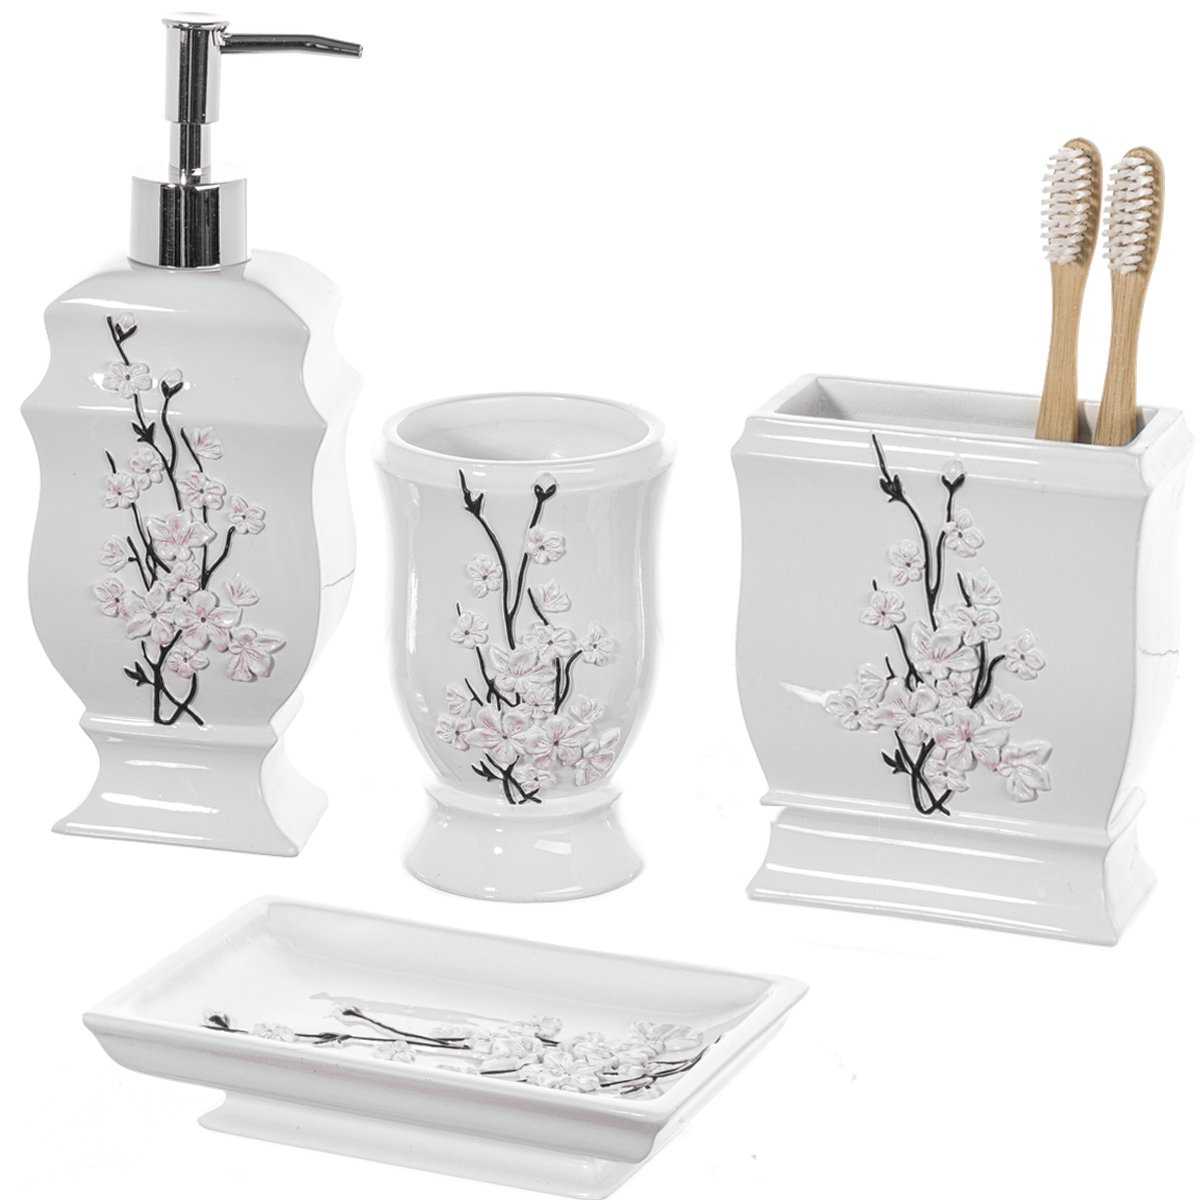 Creative Scents 4 Piece Bathroom Accessory Set - Gift Package - Soap Dish and Dispenser, Toothbrush Holder, and Tumbler Cup - Vanda Floral Style - by SVA-44317